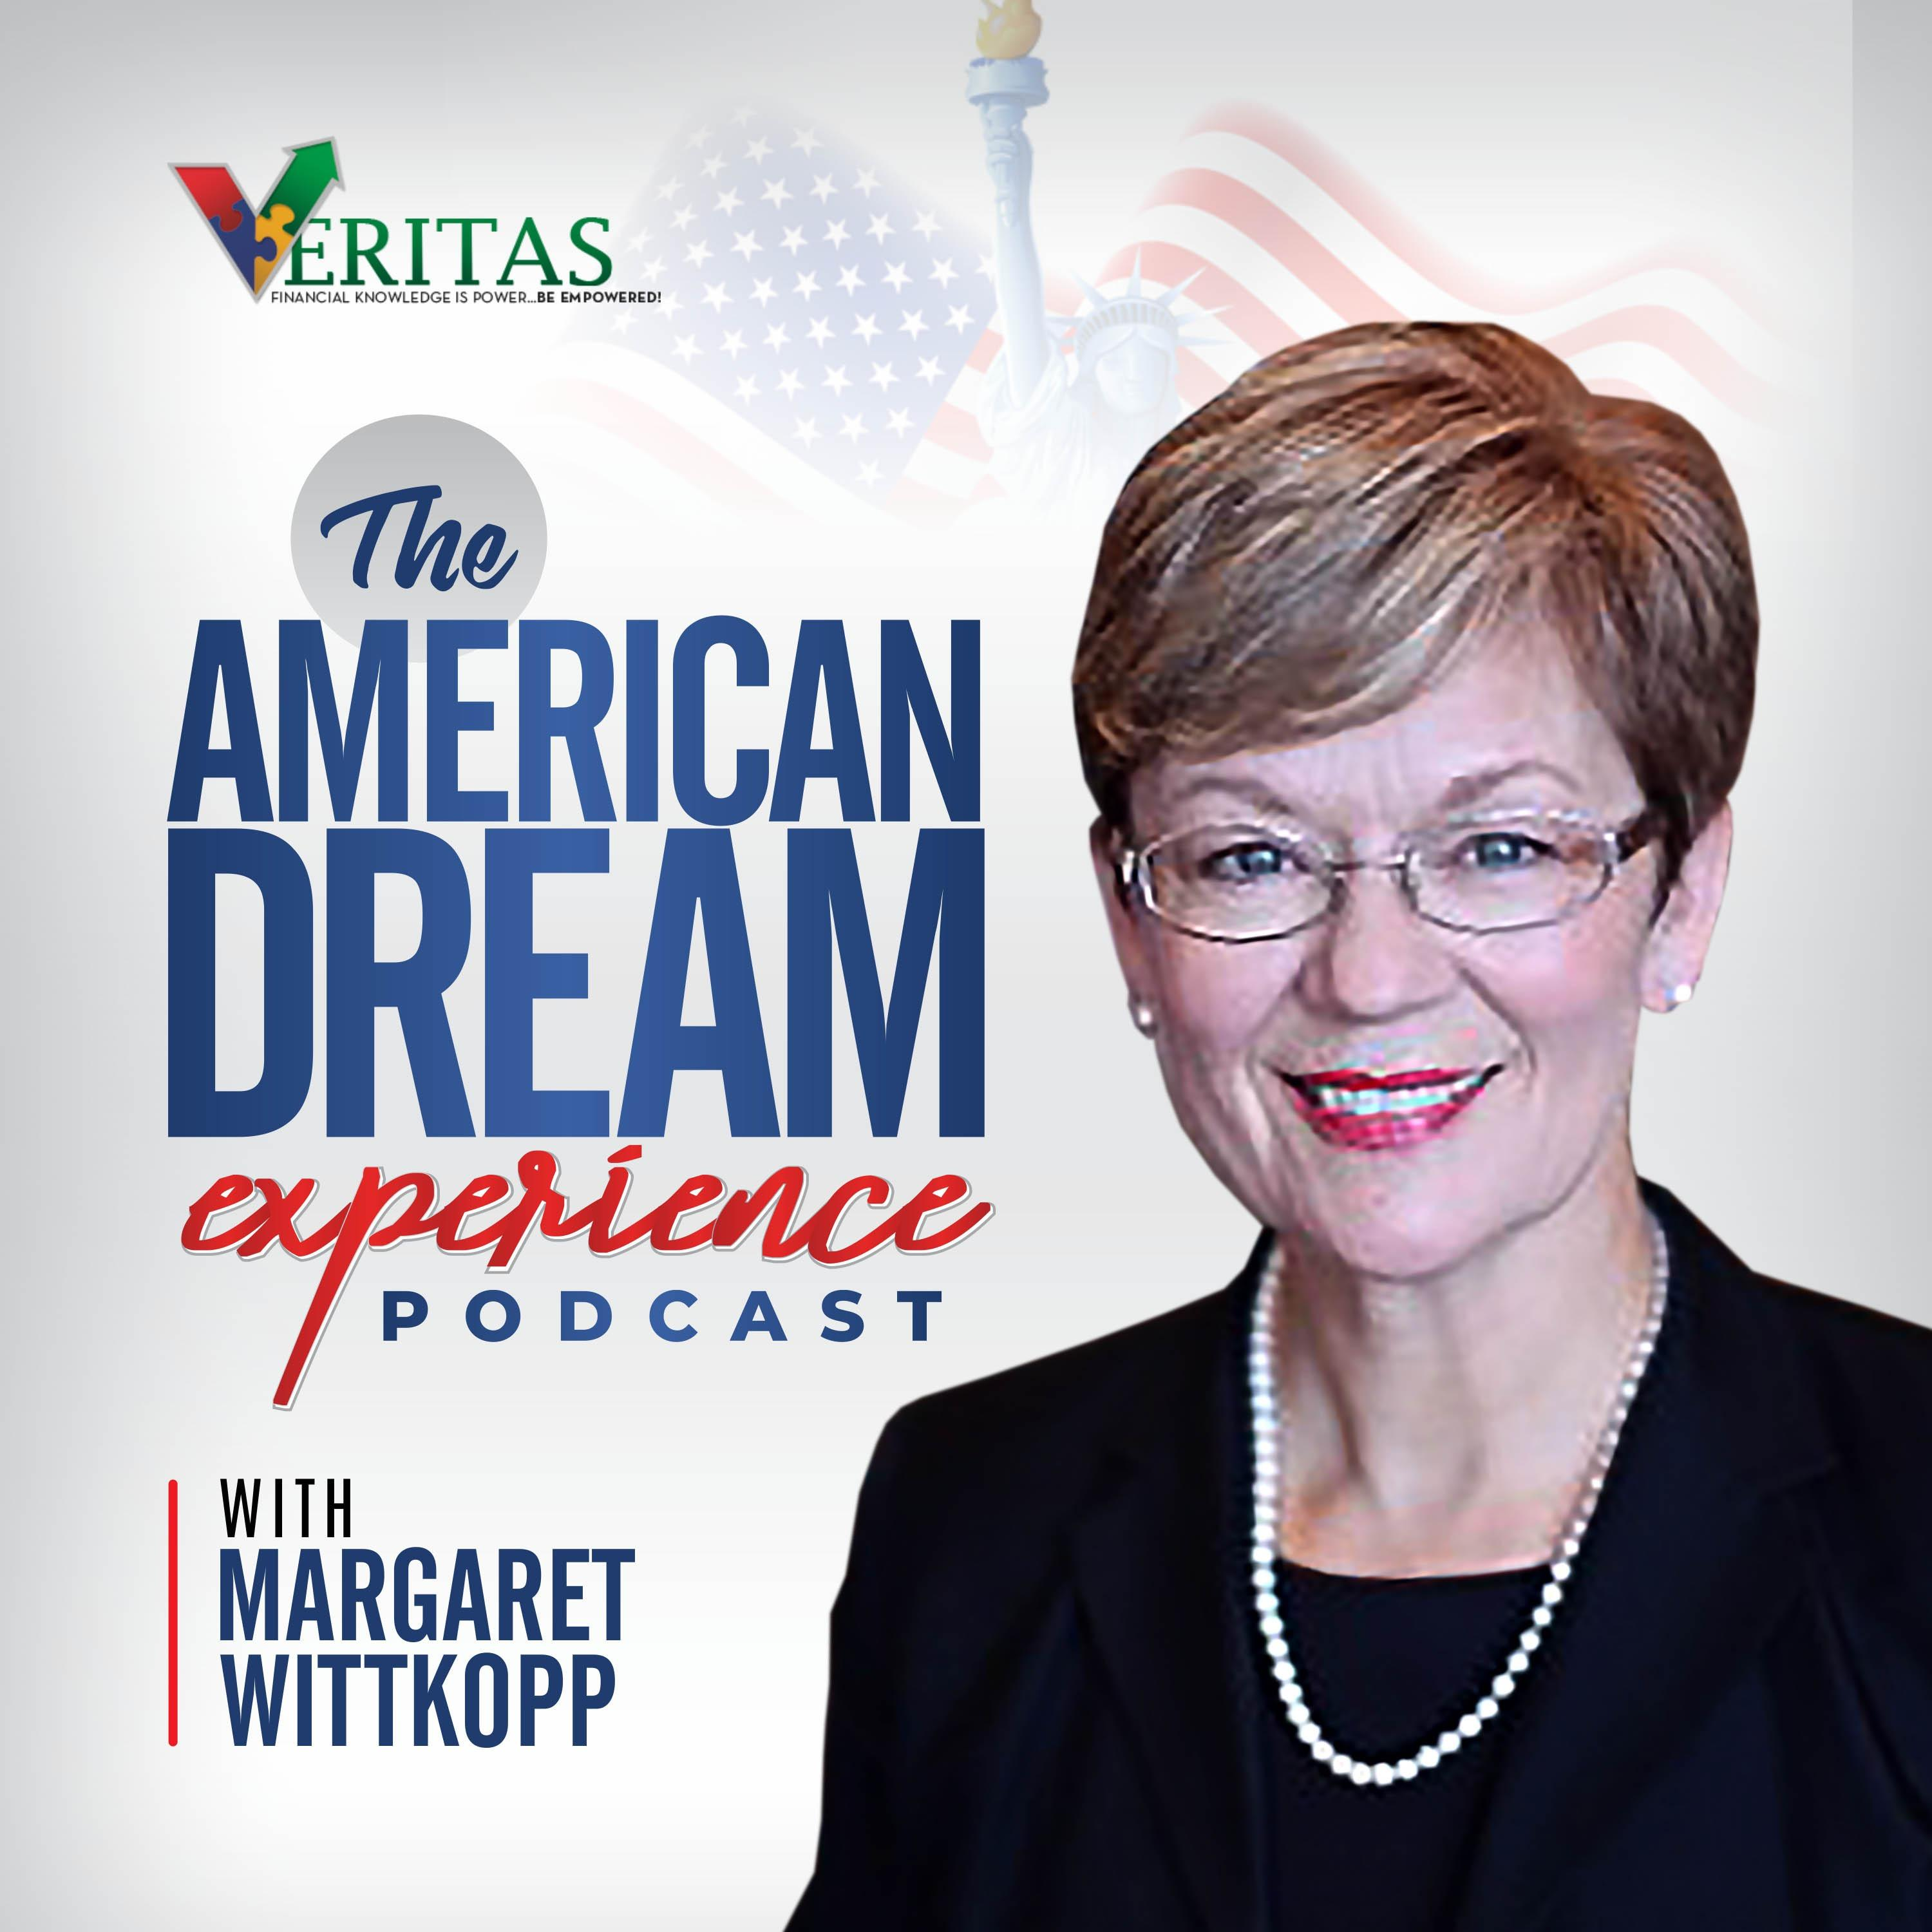 The American Dream Experience Podcast